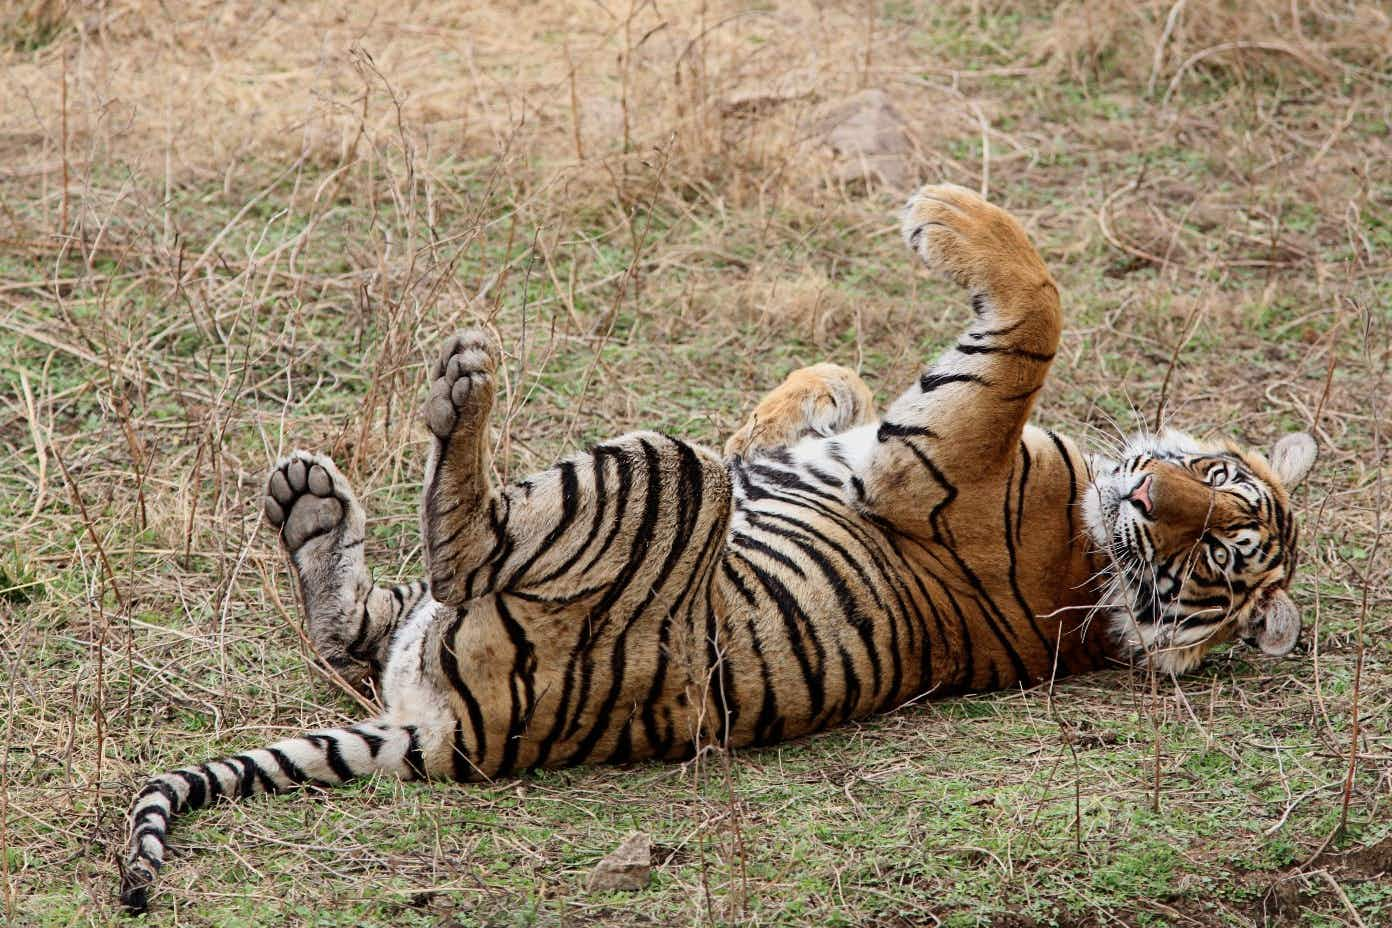 Ranthambhore National Park has been declared the 'tiger nursery of India'